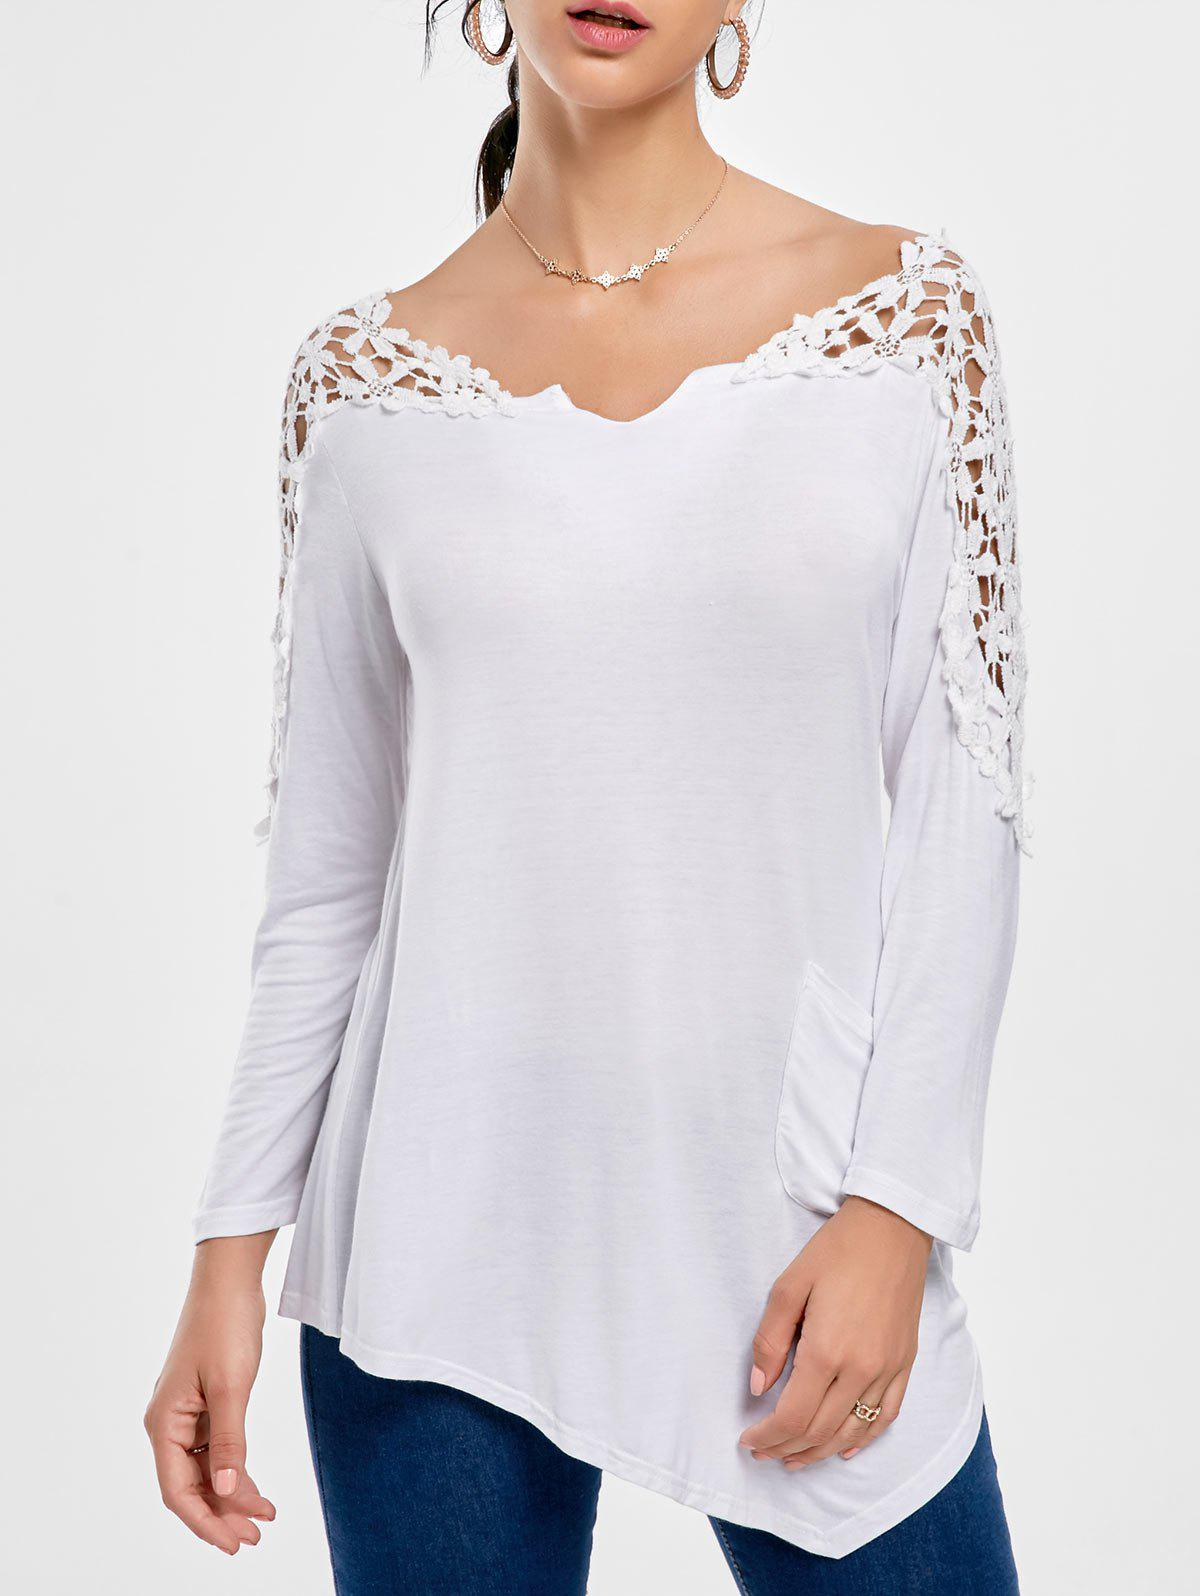 Crochet Insert Long Sleeve Asymmetric Tunic TopWOMEN<br><br>Size: M; Color: WHITE; Material: Polyester; Shirt Length: Long; Sleeve Length: Full; Collar: Scoop Neck; Style: Fashion; Pattern Type: Solid Color; Season: Fall,Spring; Weight: 0.2500kg; Package Contents: 1 x Top;